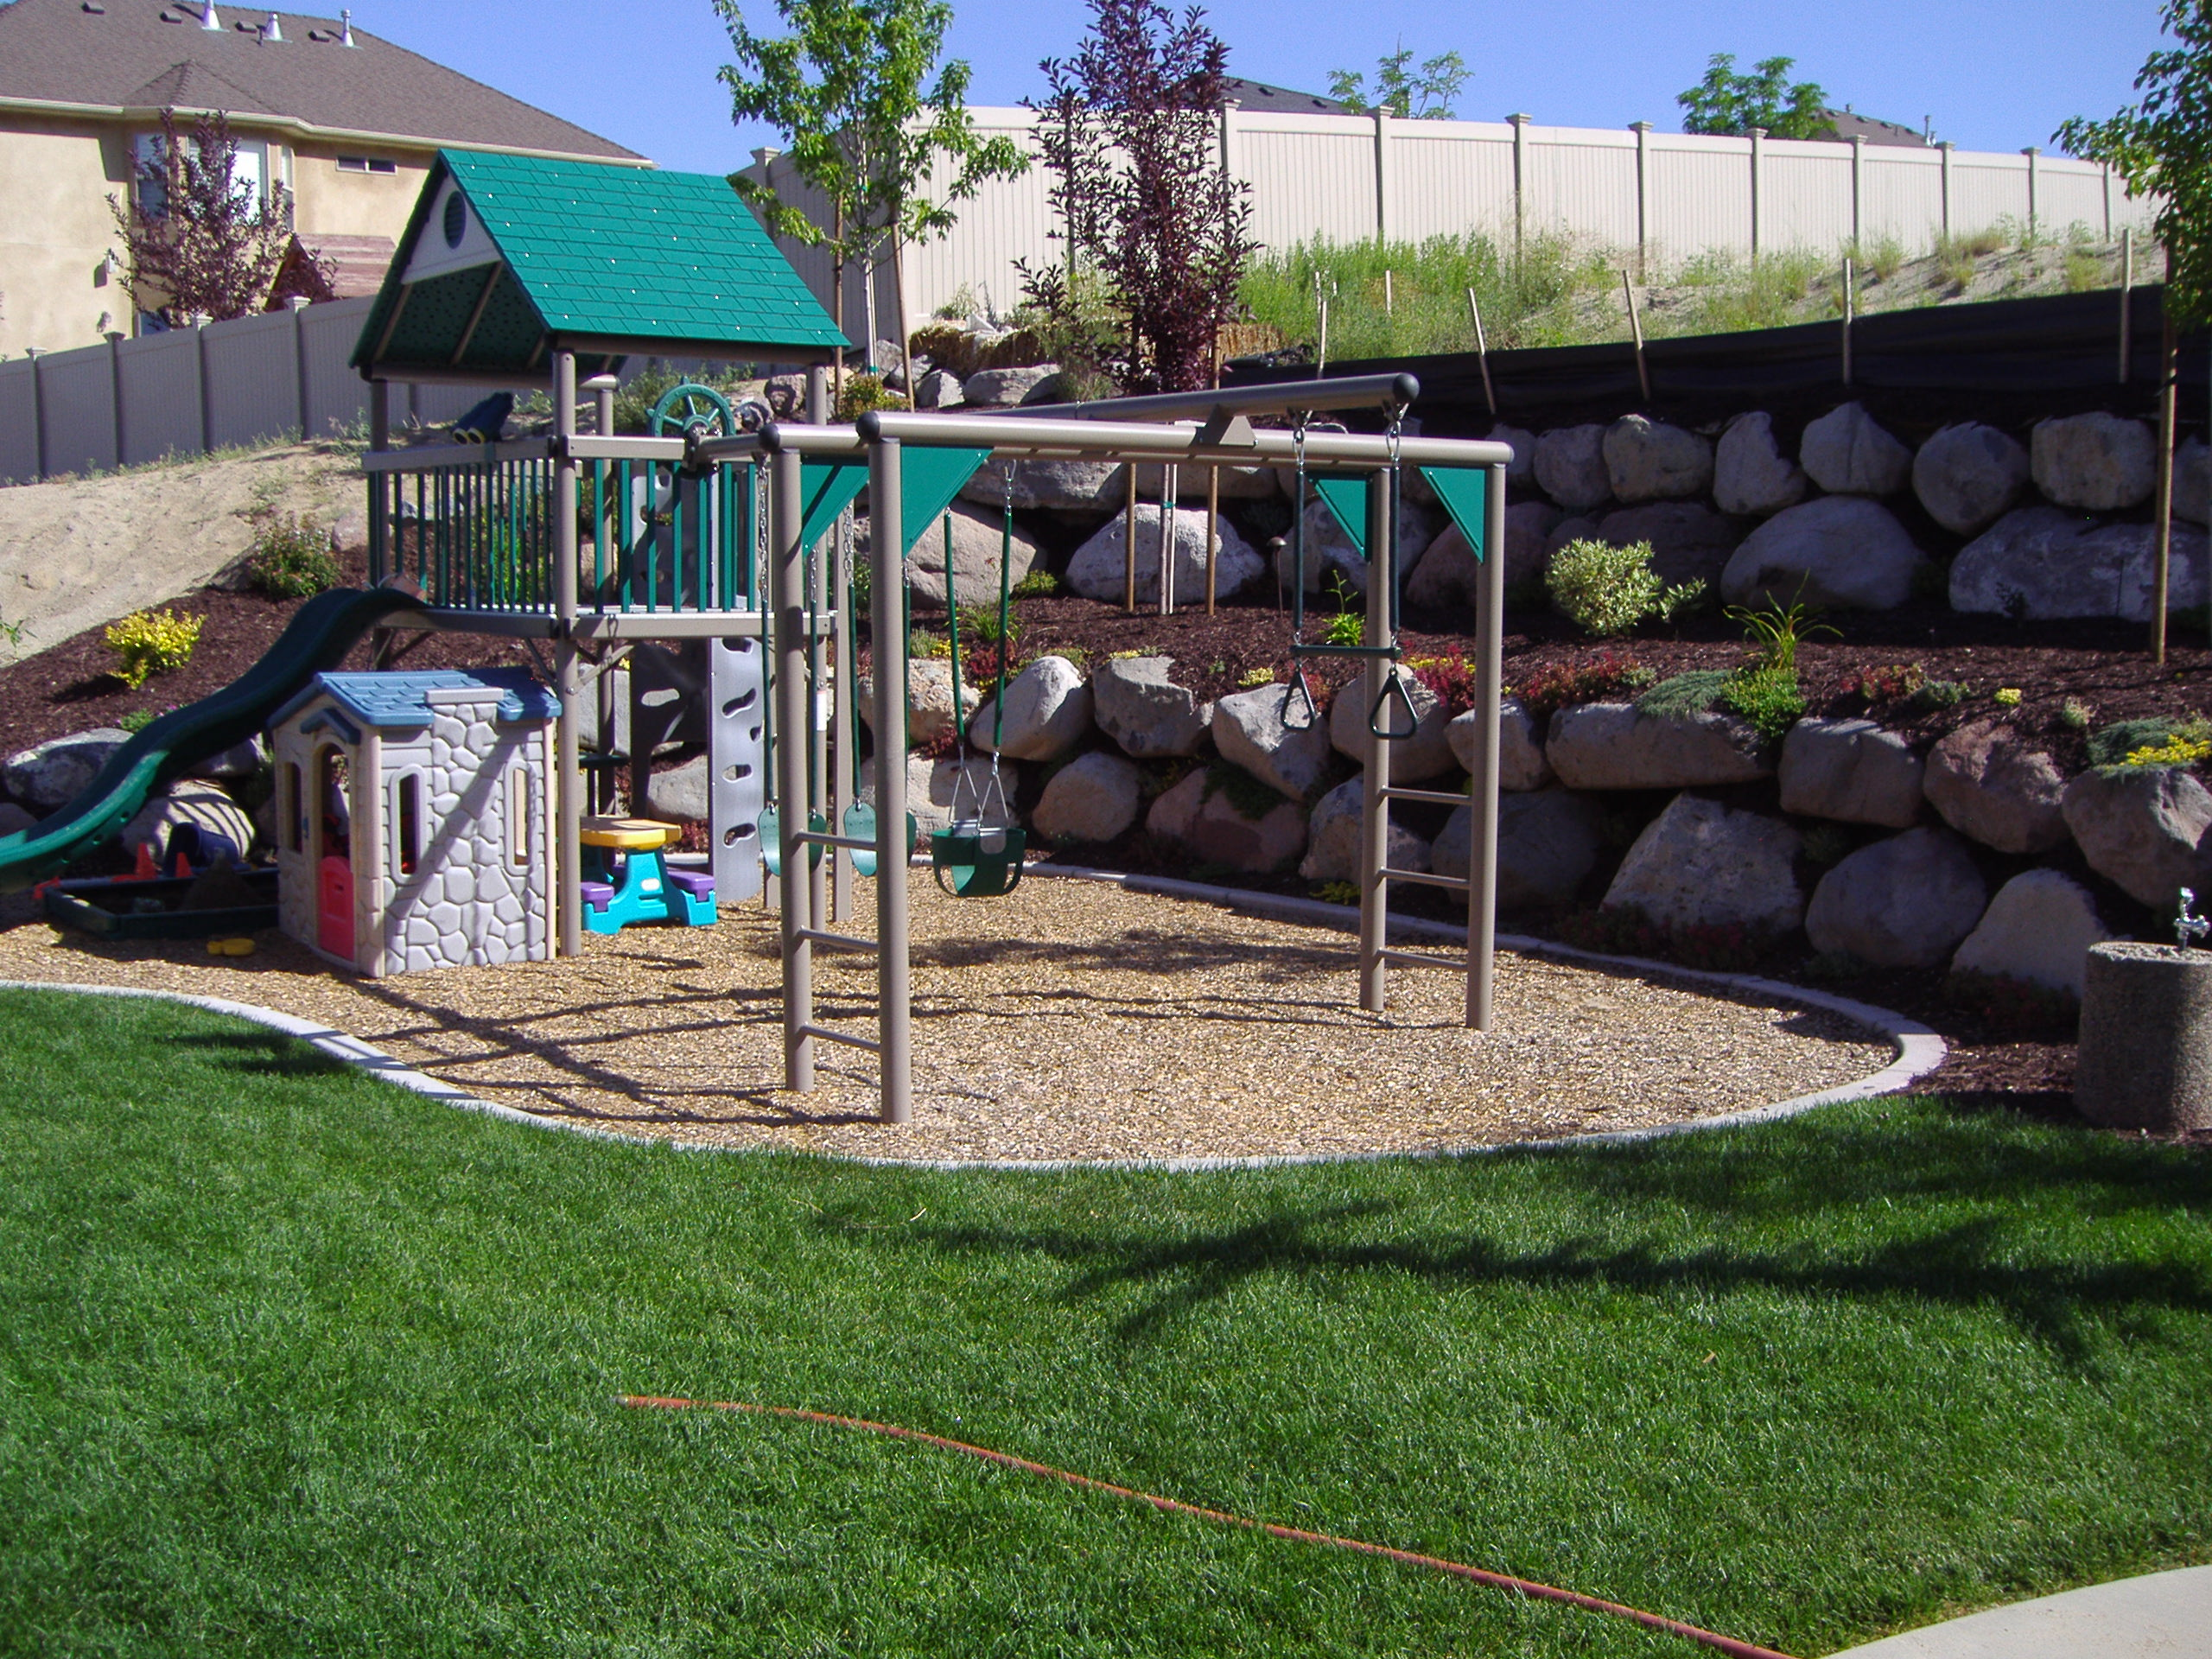 Backyard Play Area Large And Beautiful Photos Photo To Select - Backyard play area ideas